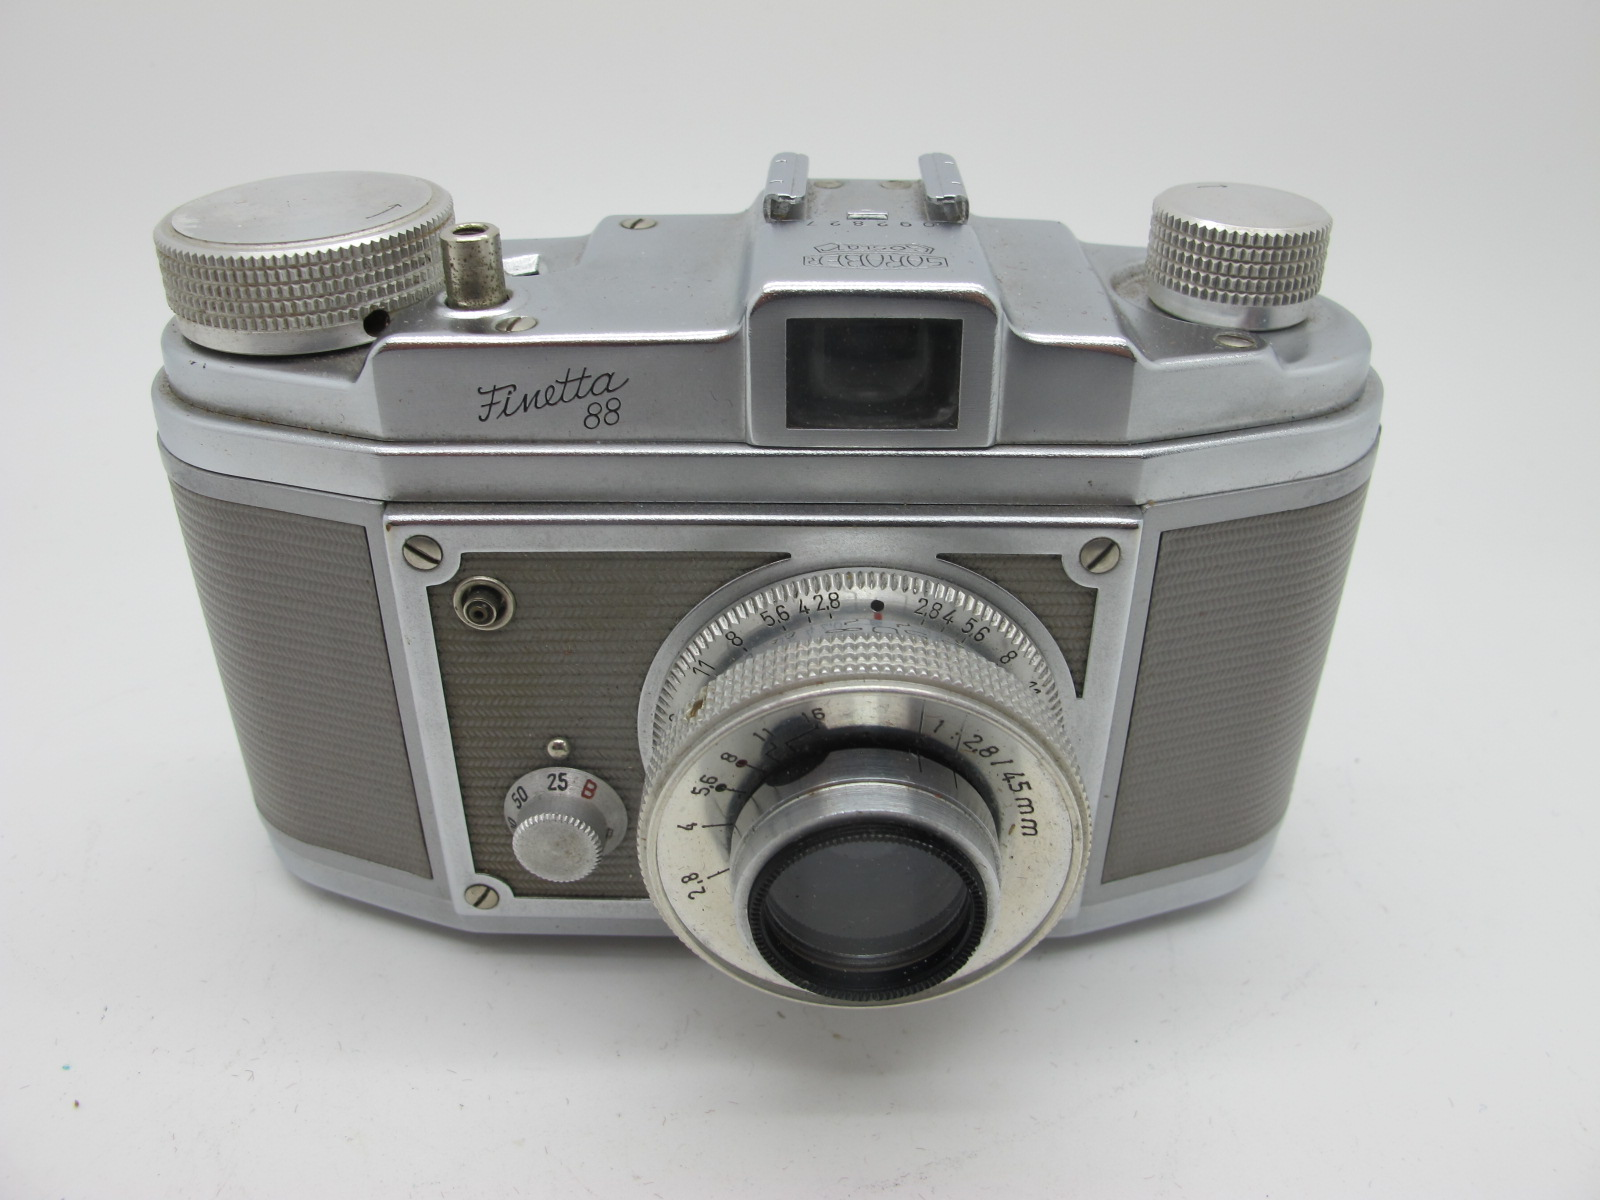 Saraber Goslar Finetta 88, Edika Flex, plus two other camera's in brown leather cases. (4) - Image 11 of 13